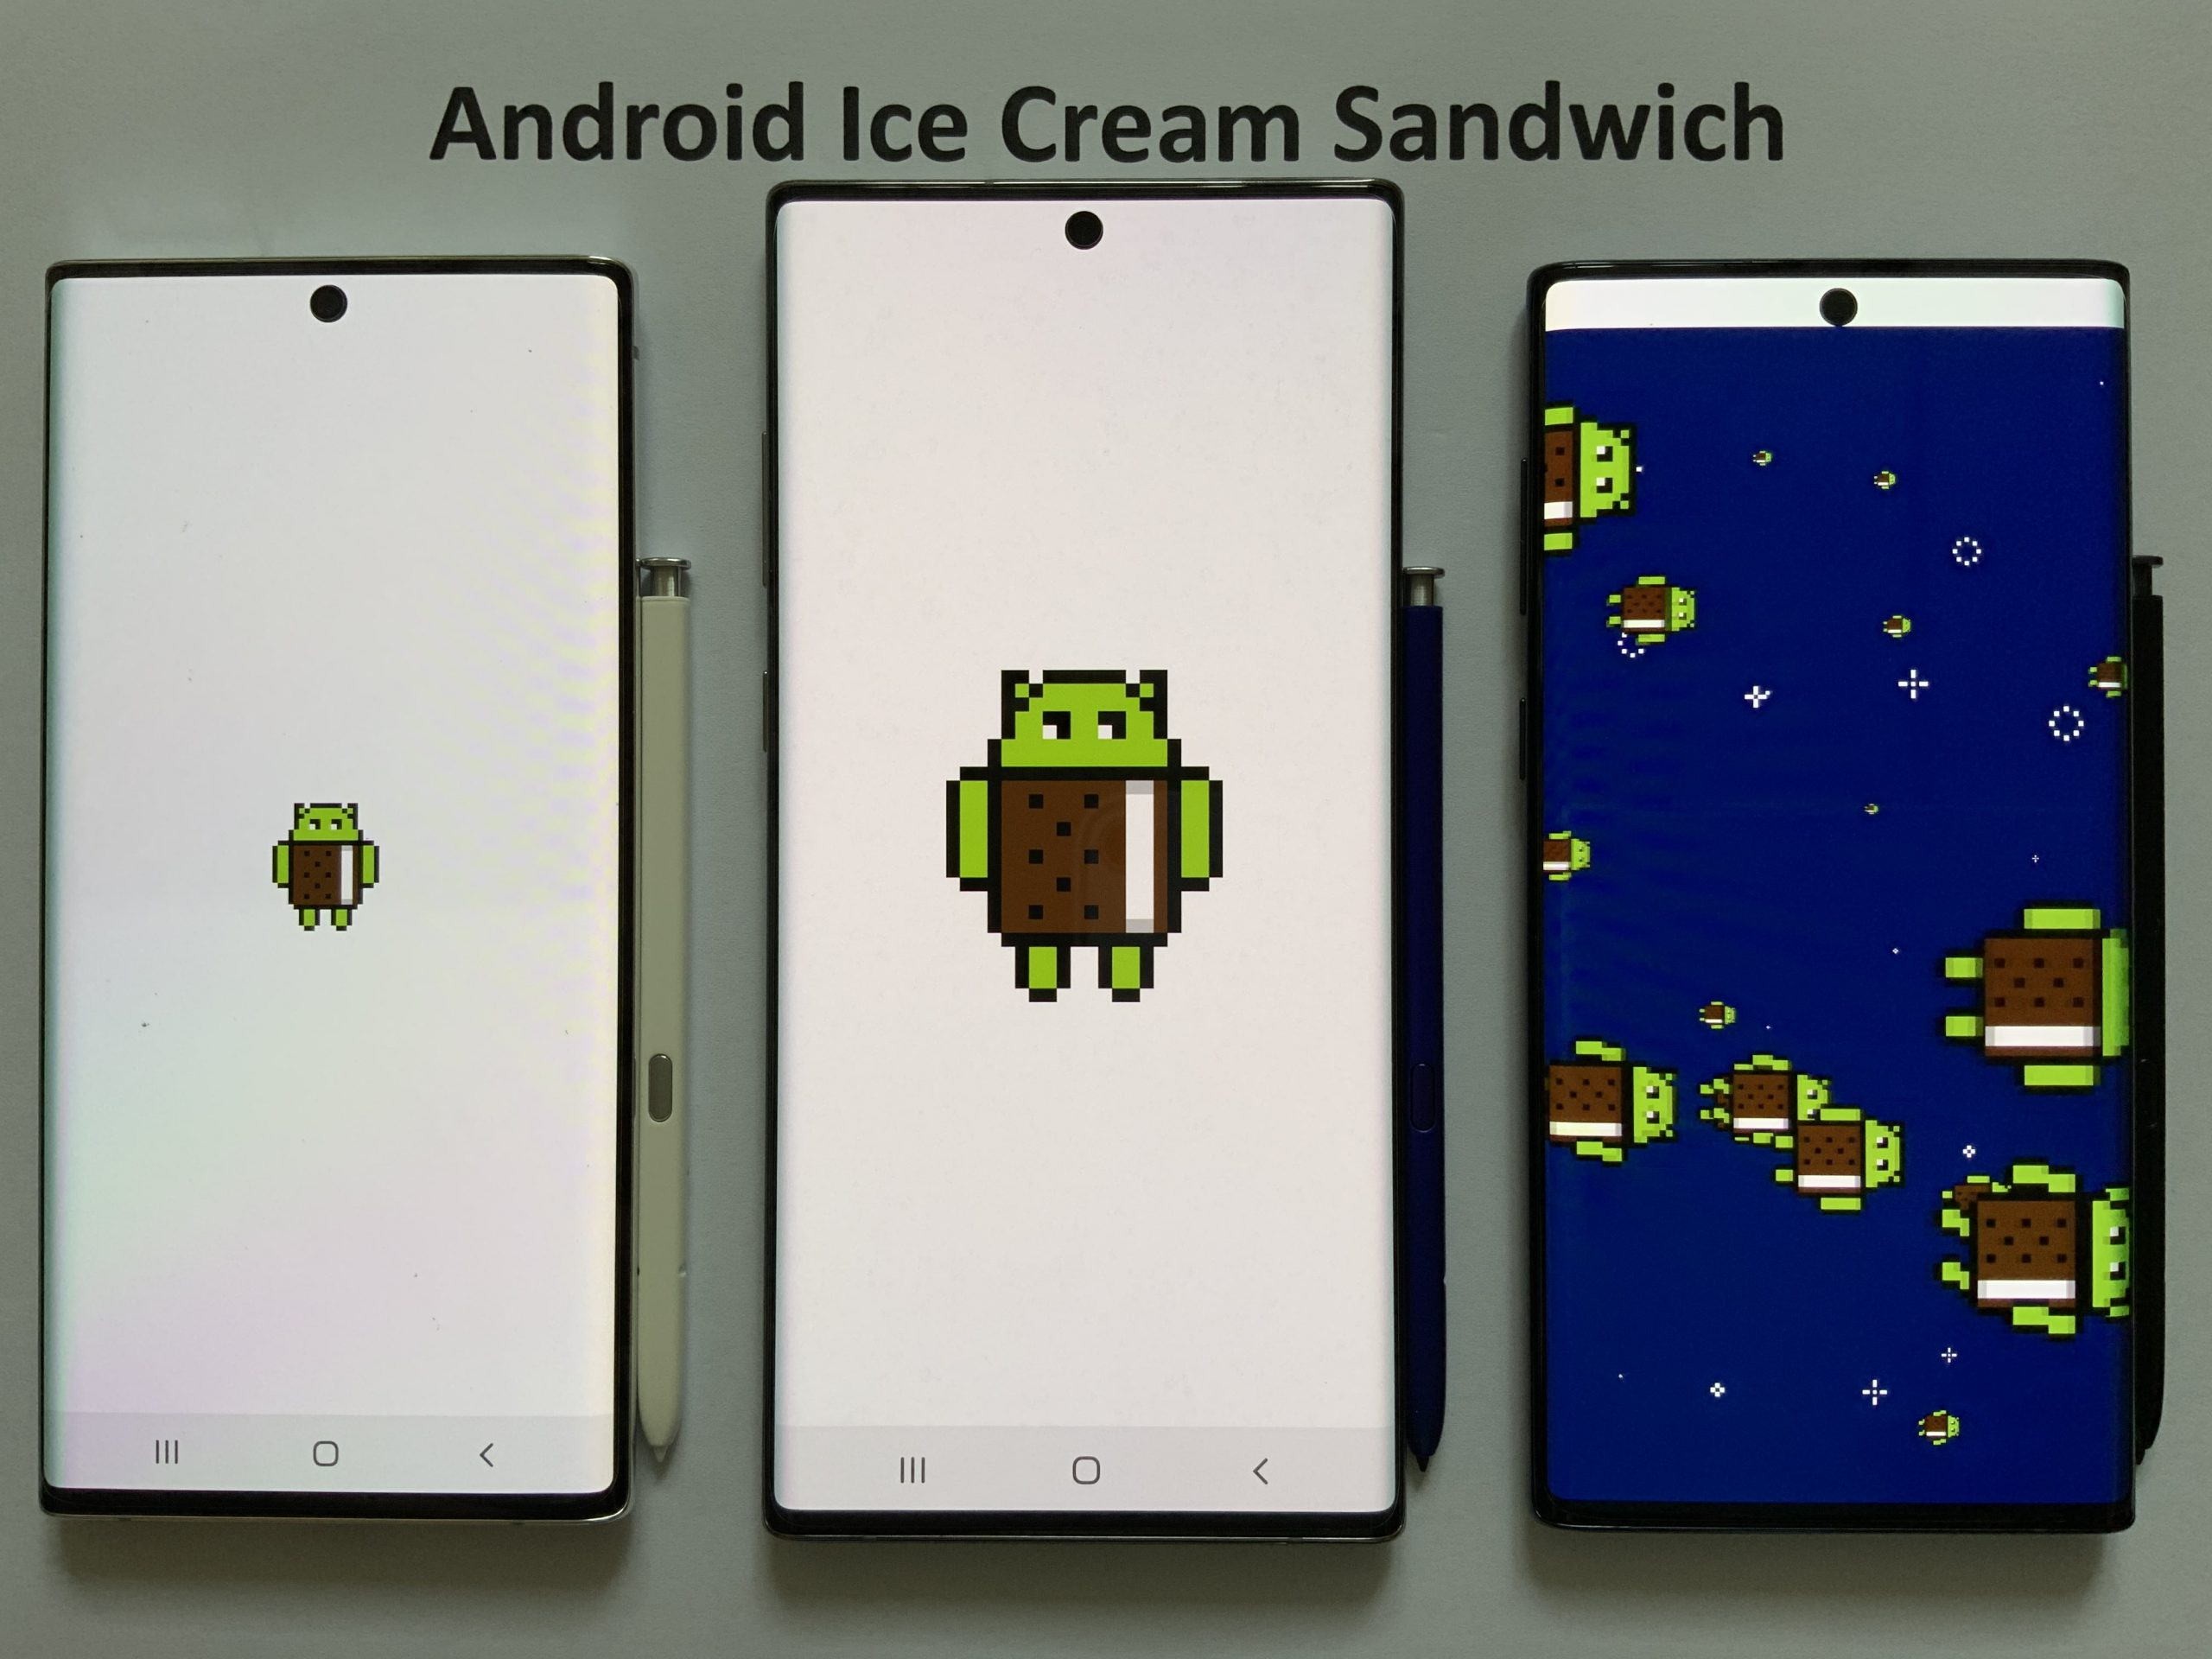 Android 4.0 – Ice Cream Sandwich